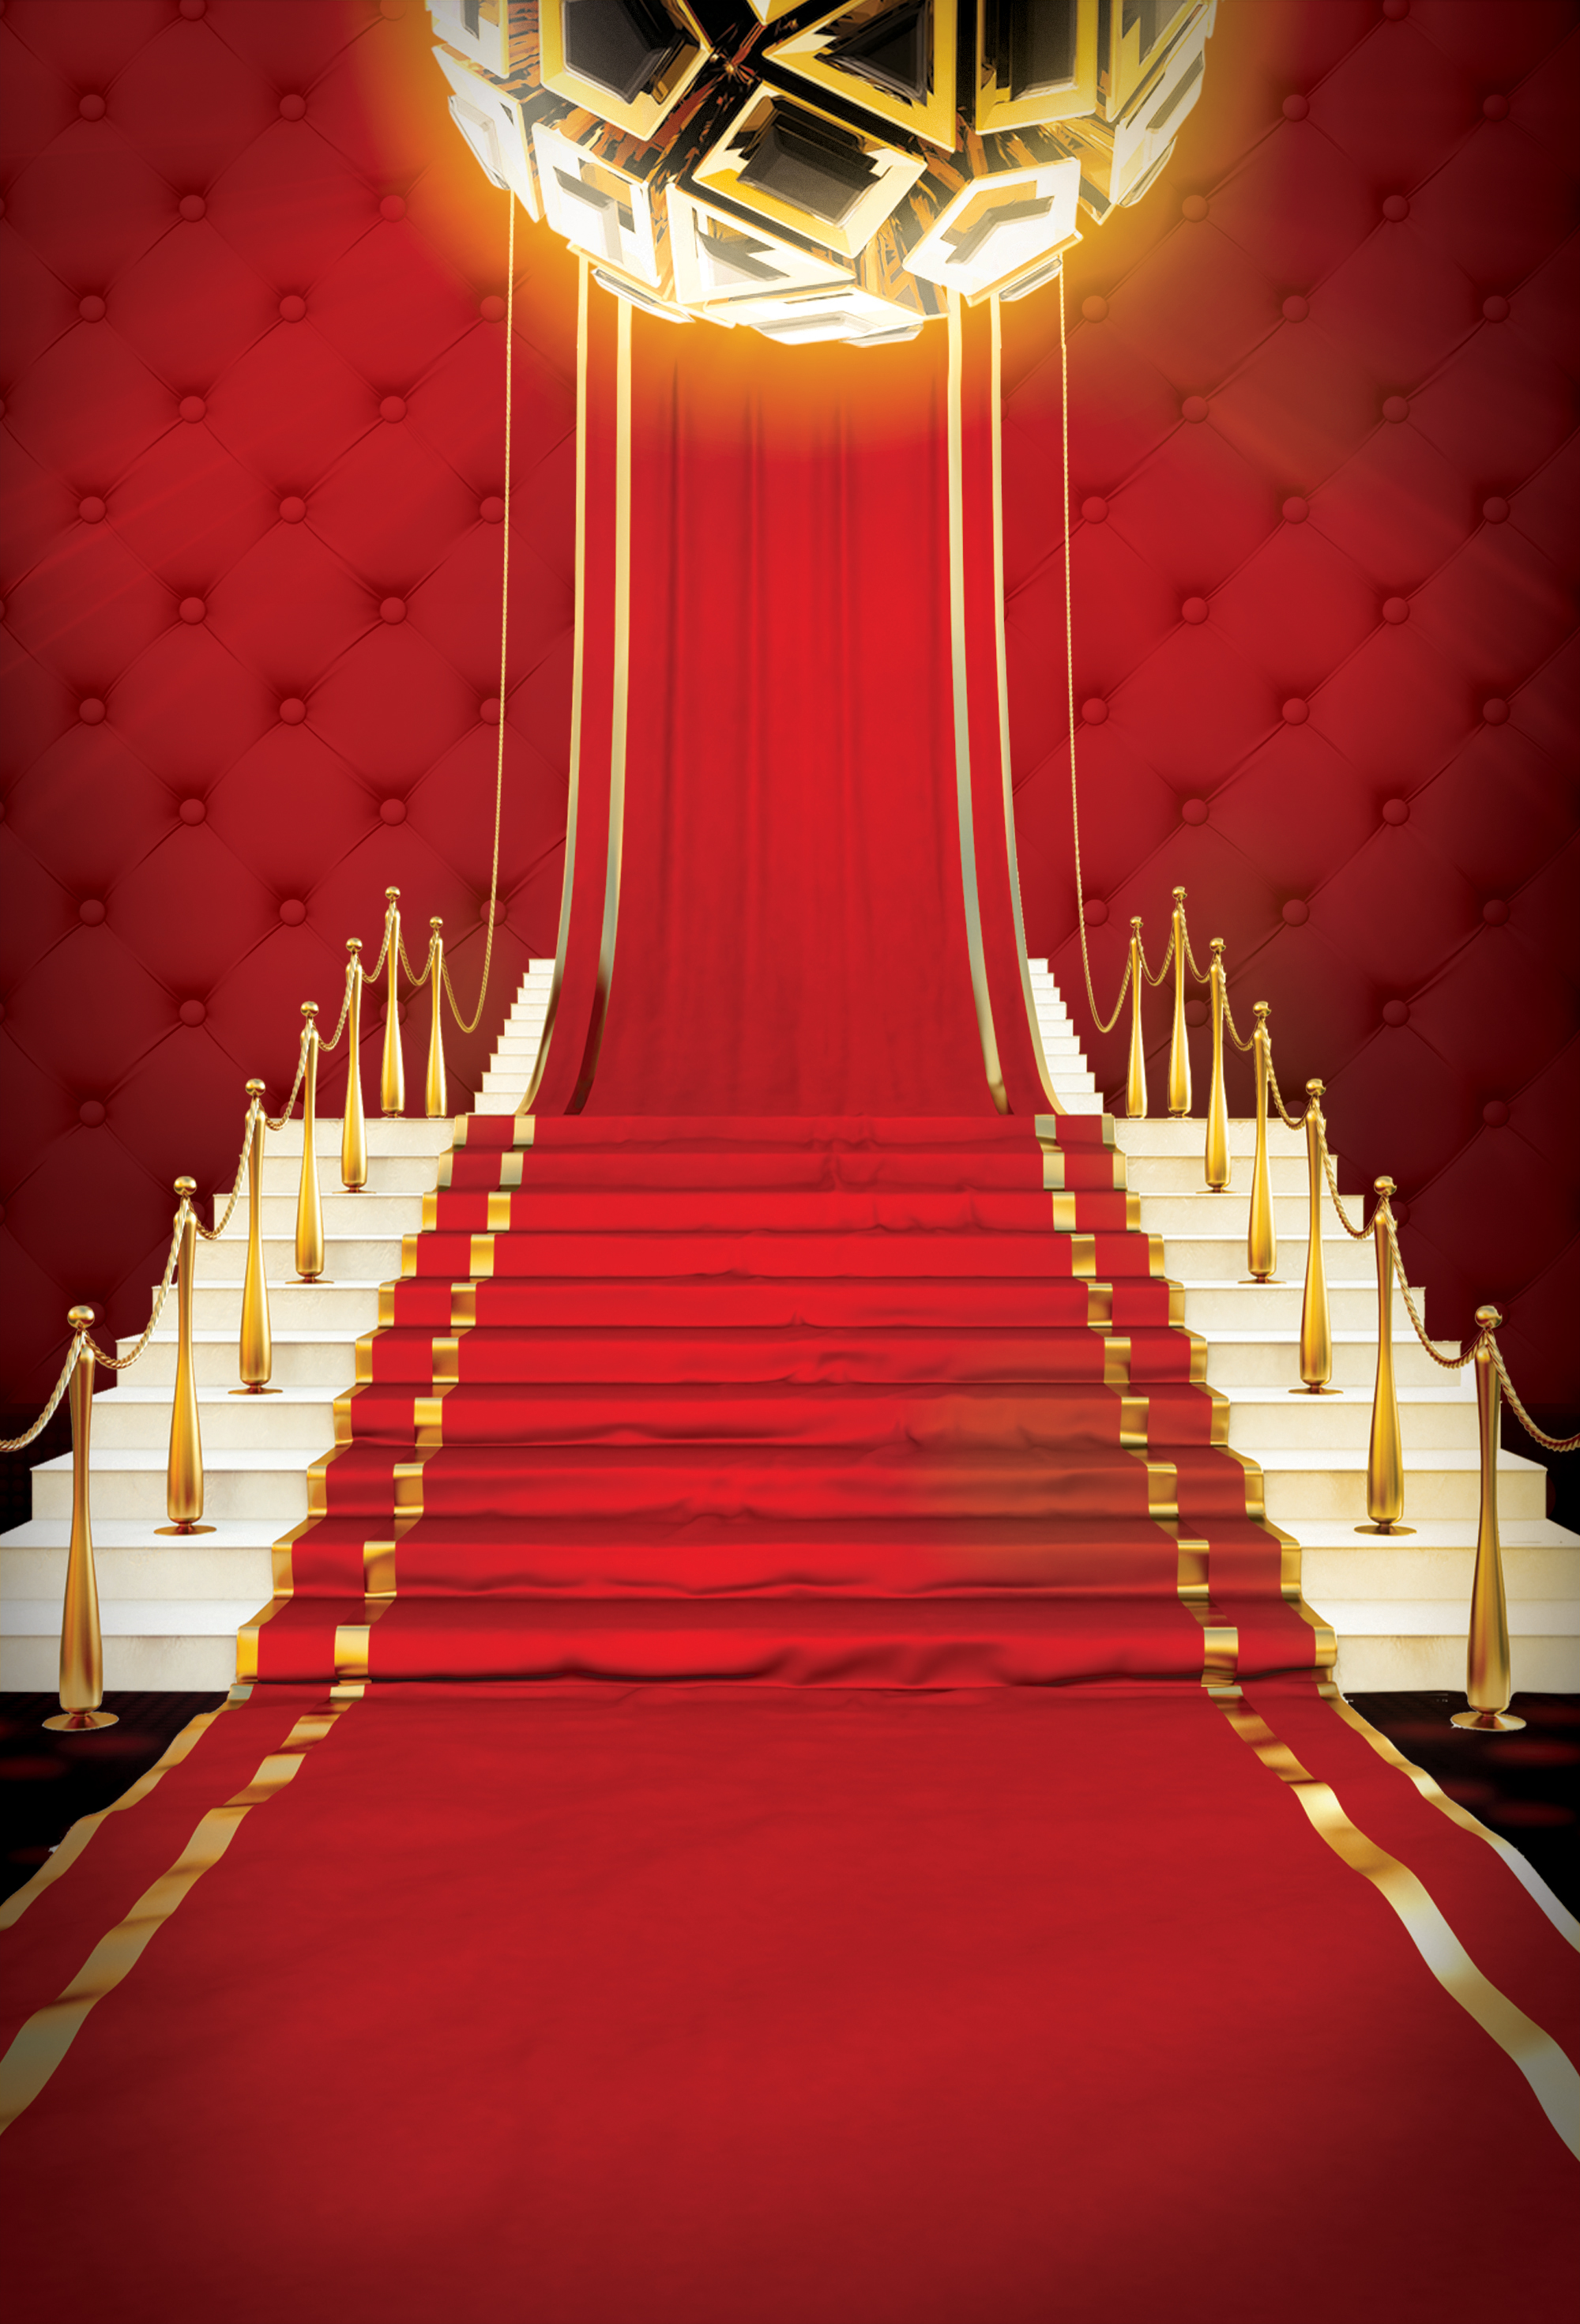 poster background festive atmosphere  red  carpet  joyous